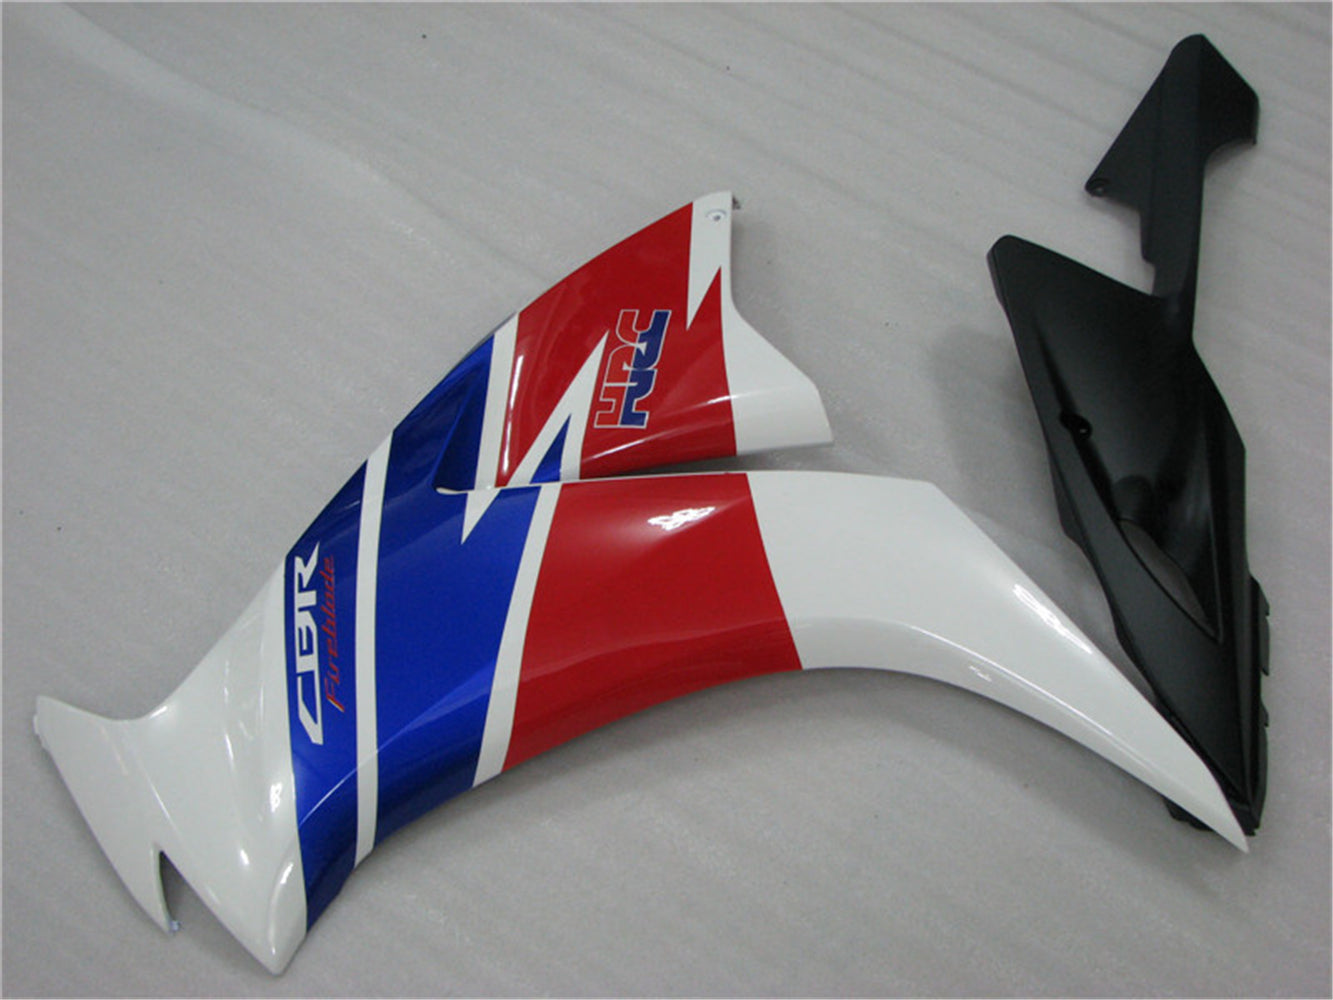 NT Aftermarket Injection ABS Plastic Fairing Fit for CBR1000RR 2012-2016 White Blue Red N016